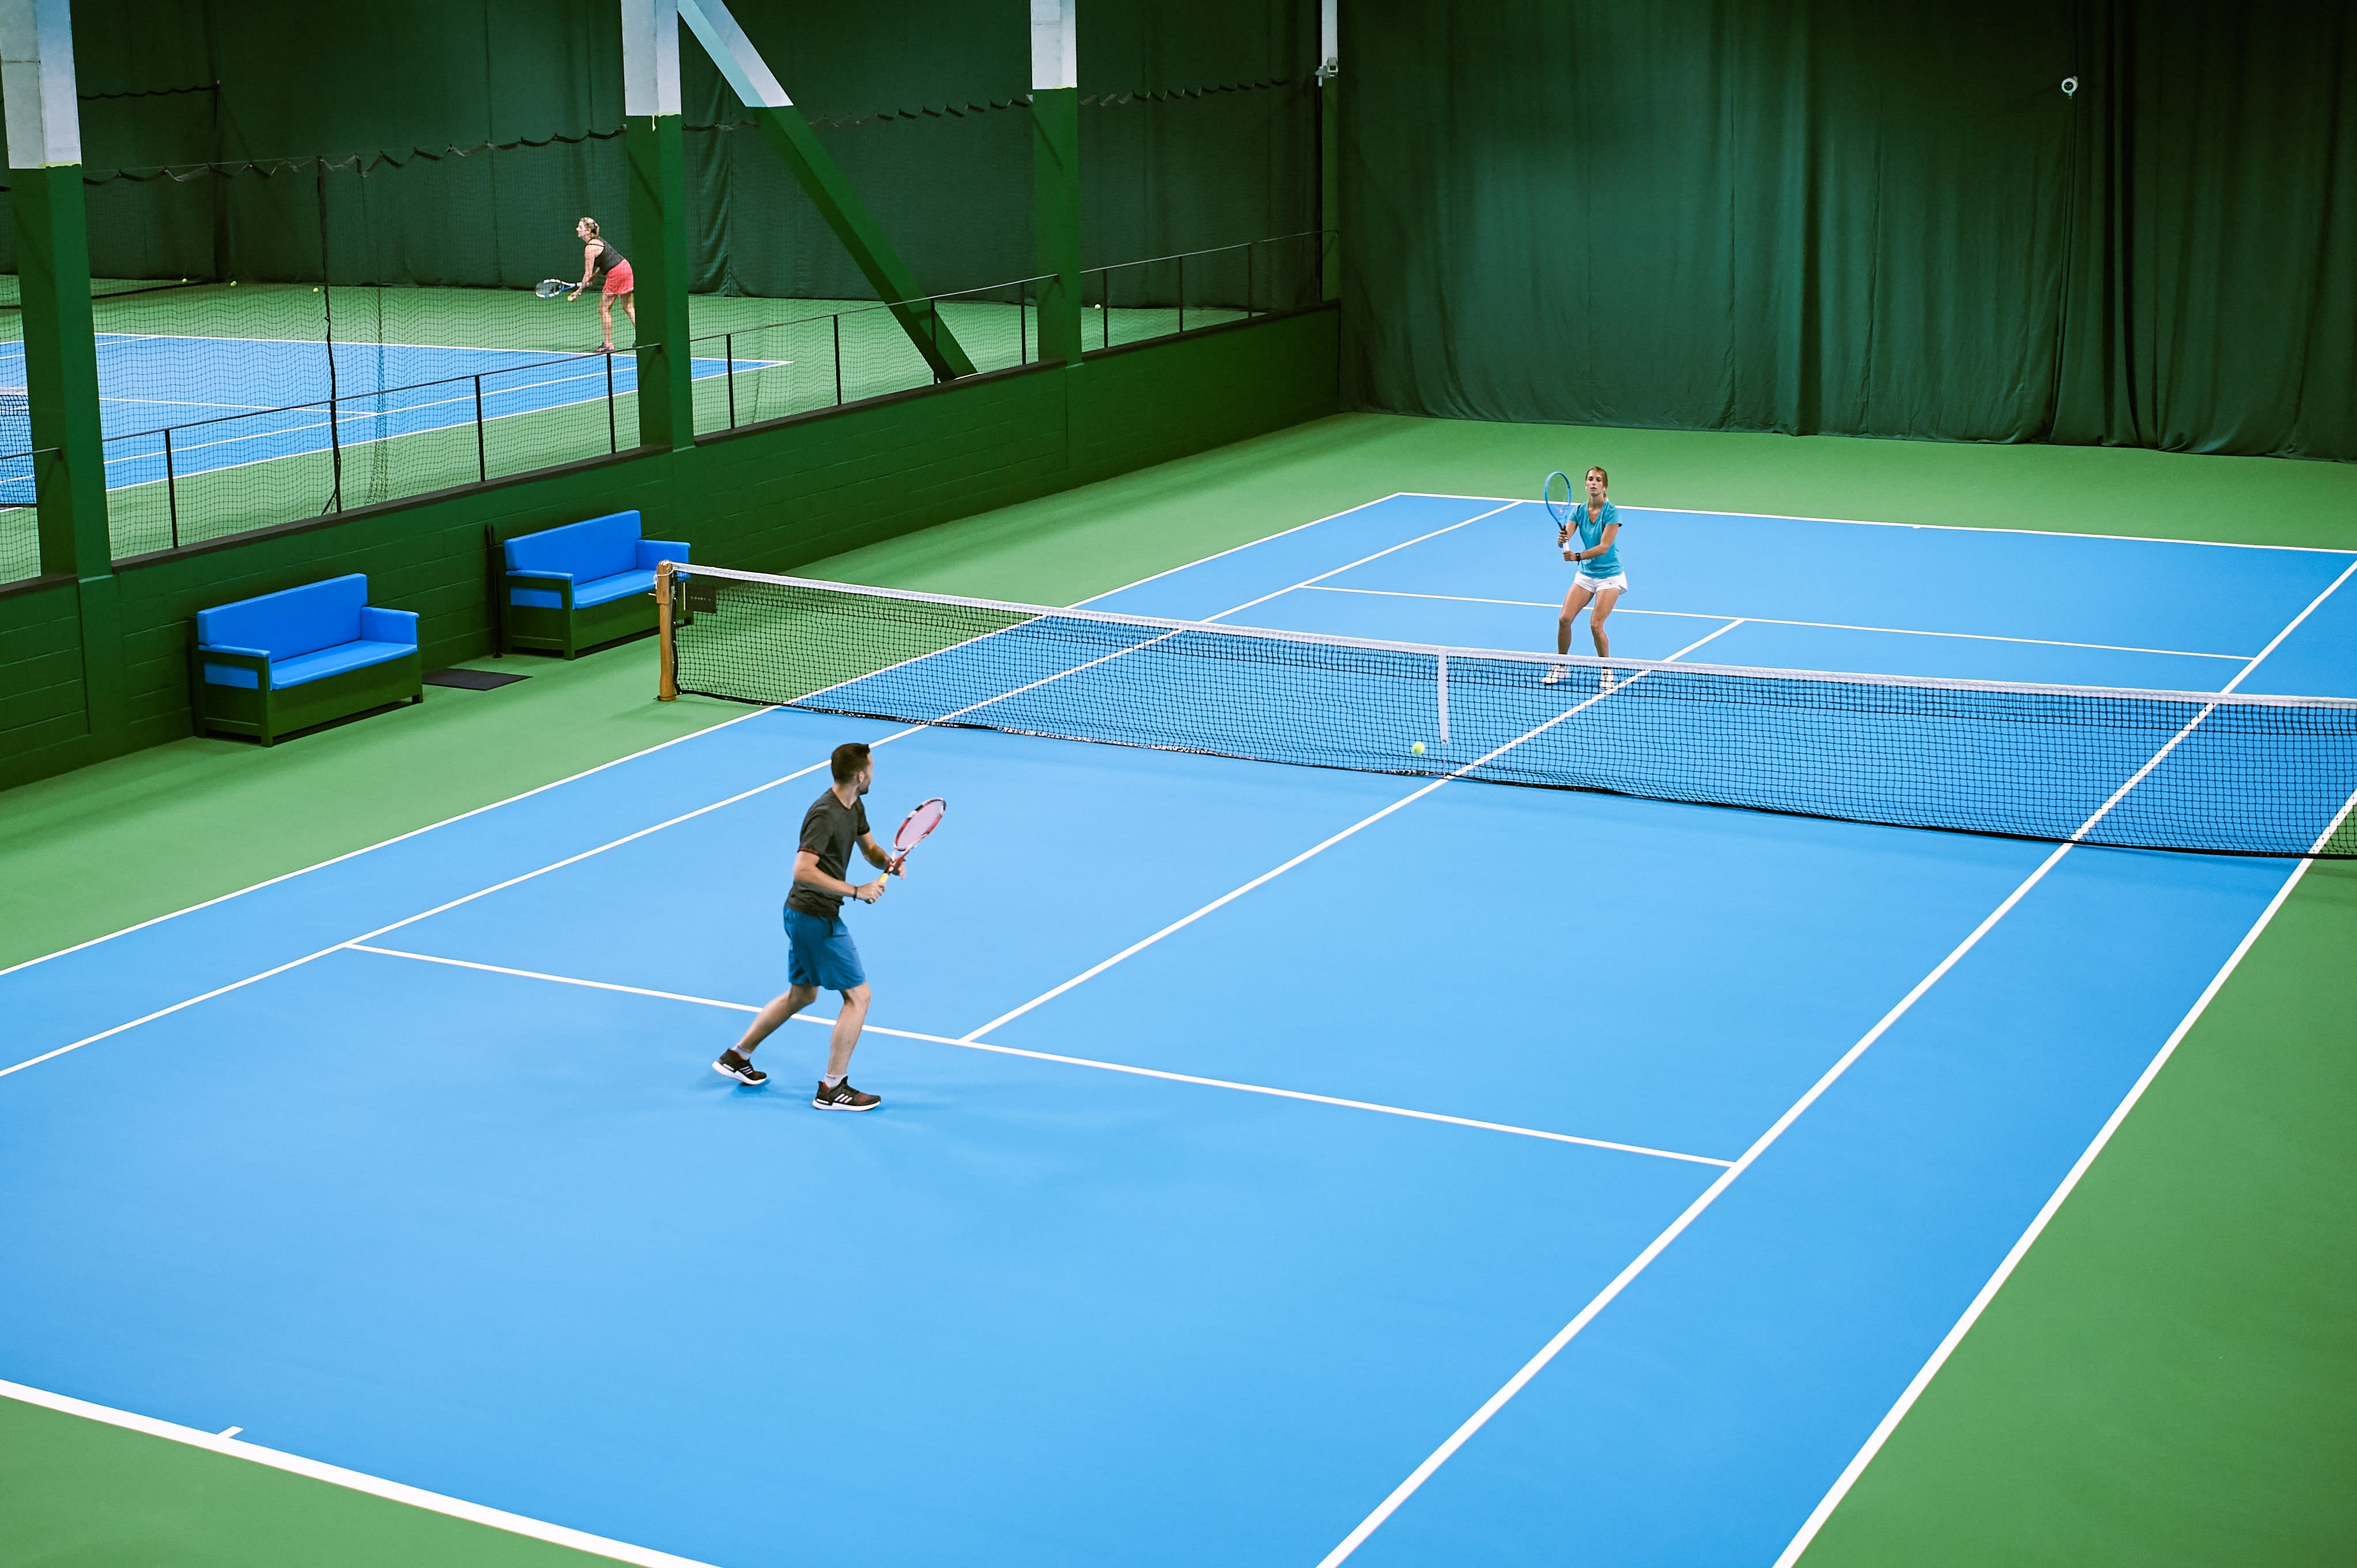 The expansive multi-court indoor tennis space at the club